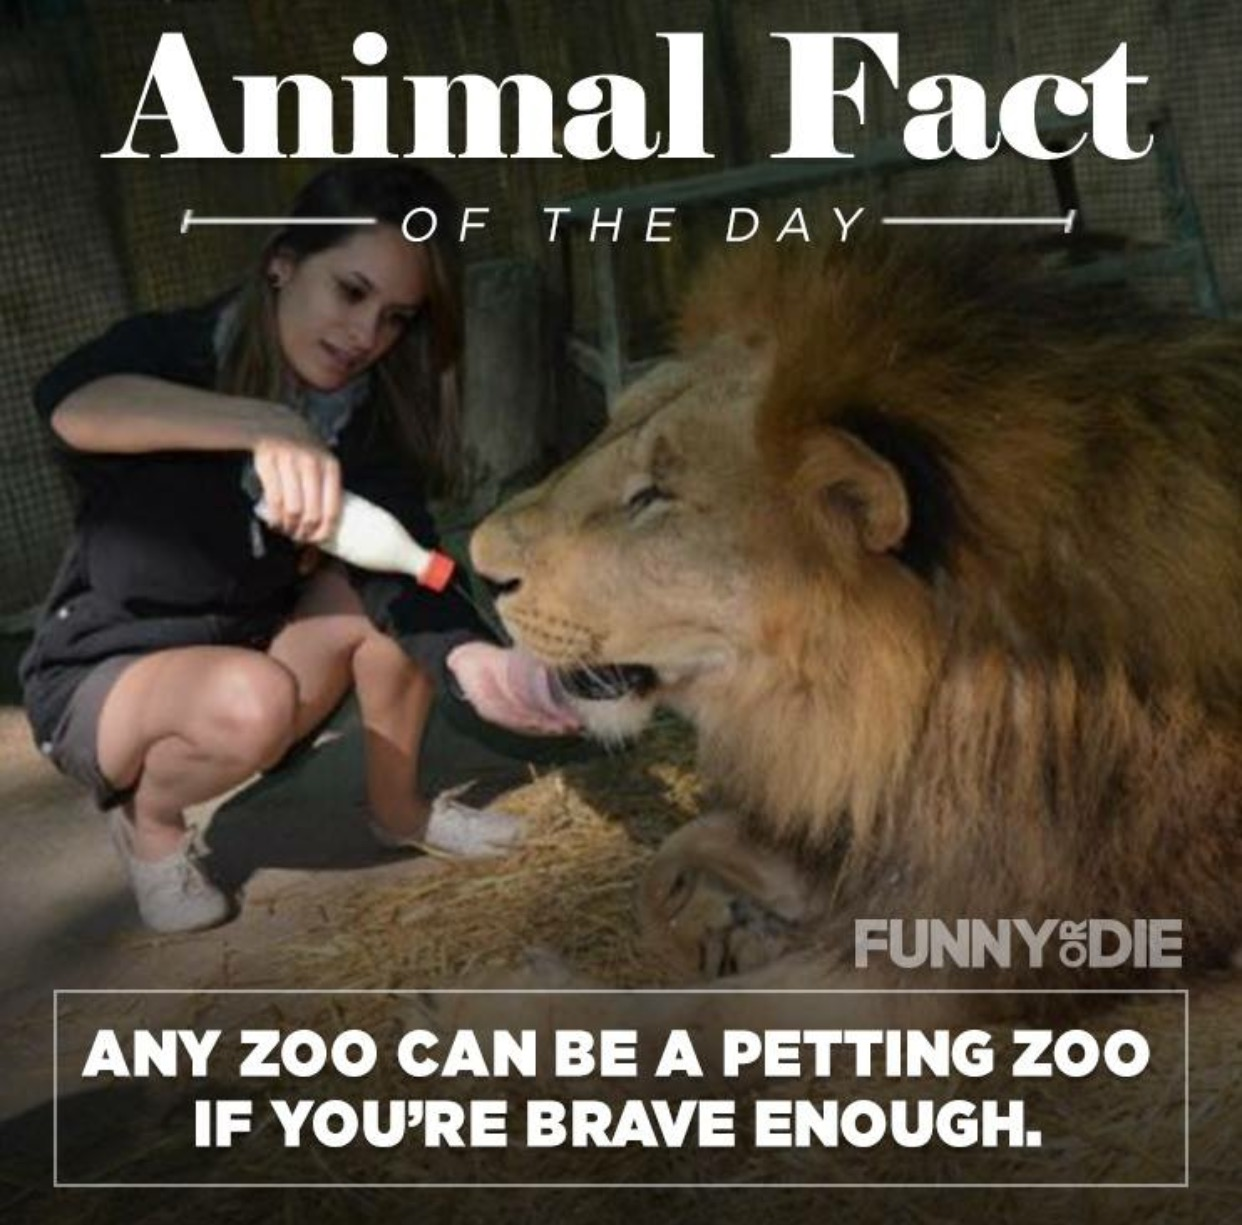 chair for bedroom van swivel captains chairs 25 funny animal facts that might make you pee a little